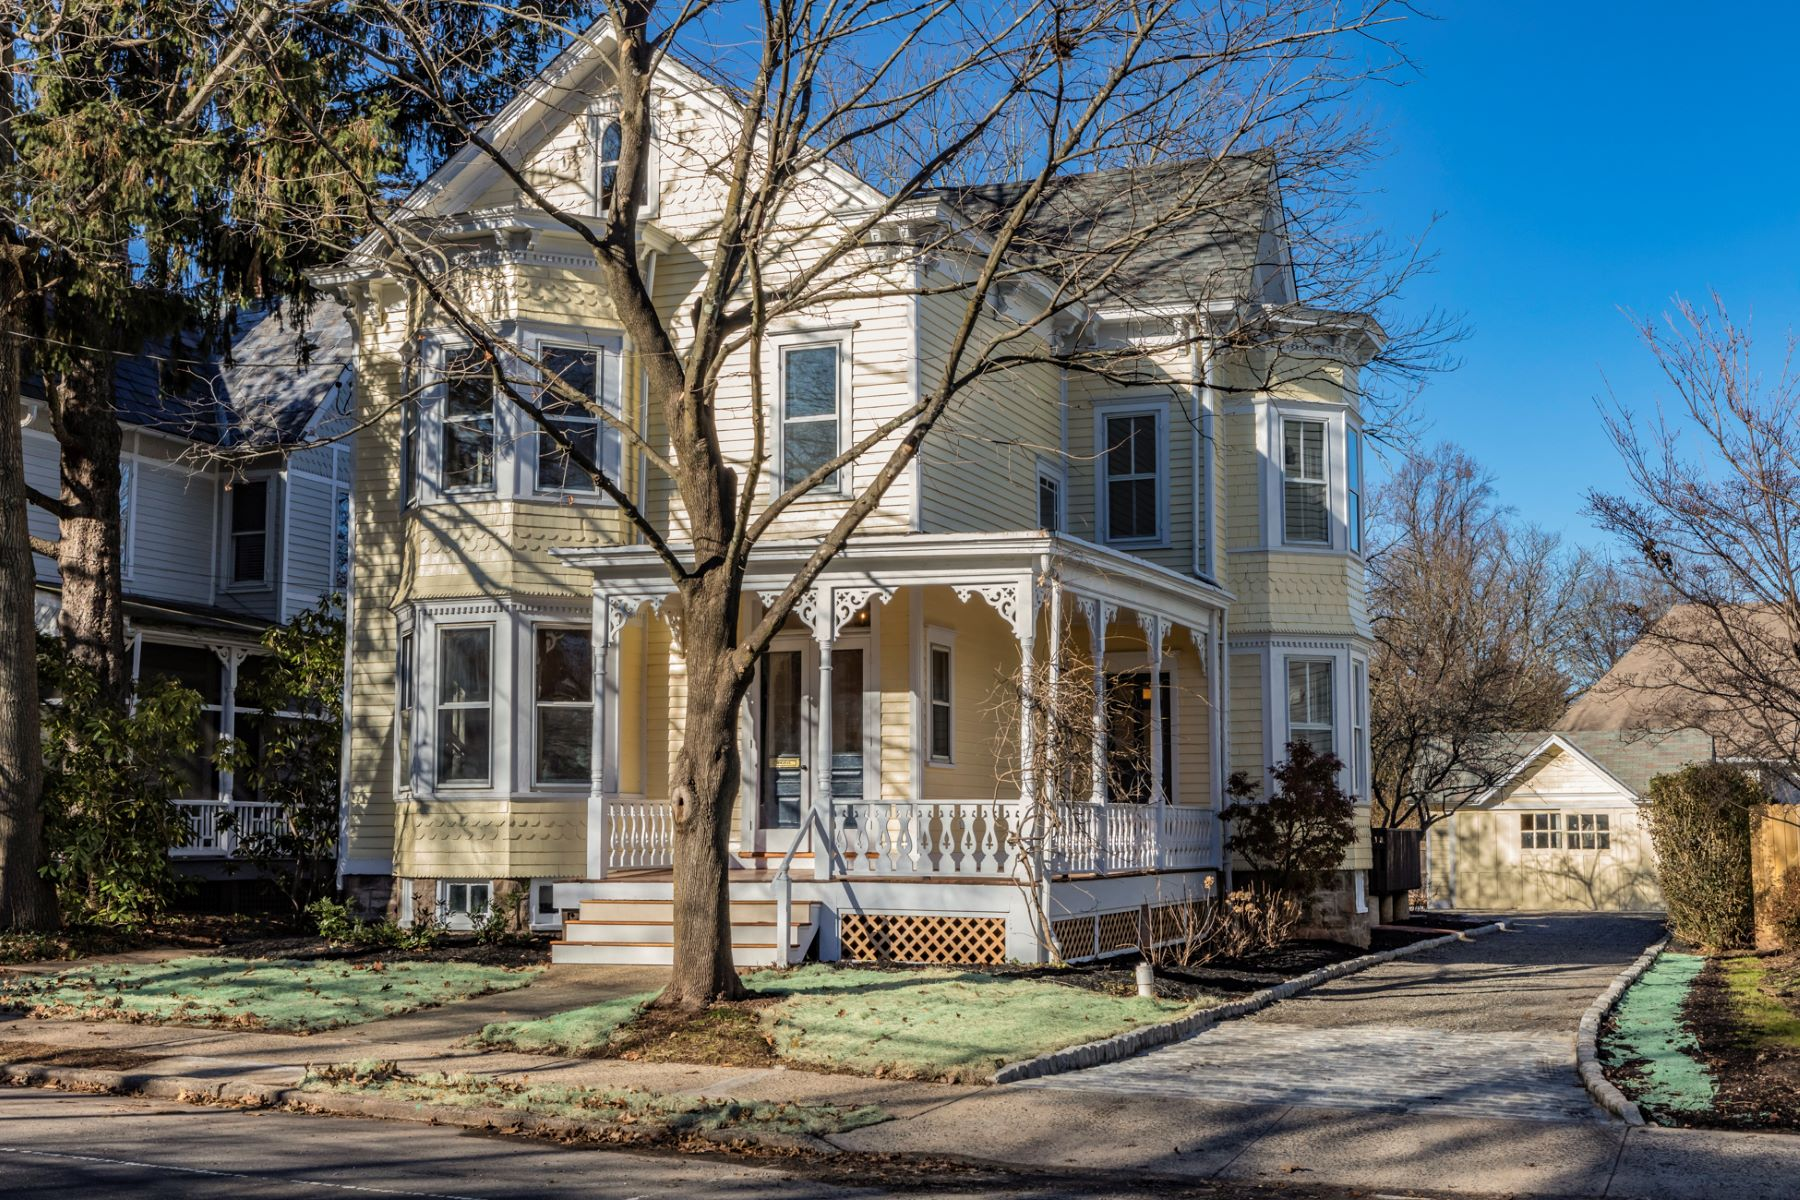 Single Family Homes for Sale at Historic Charm Restored With Every Modern Amenity 25 East Delaware Avenue Pennington, New Jersey 08534 United States